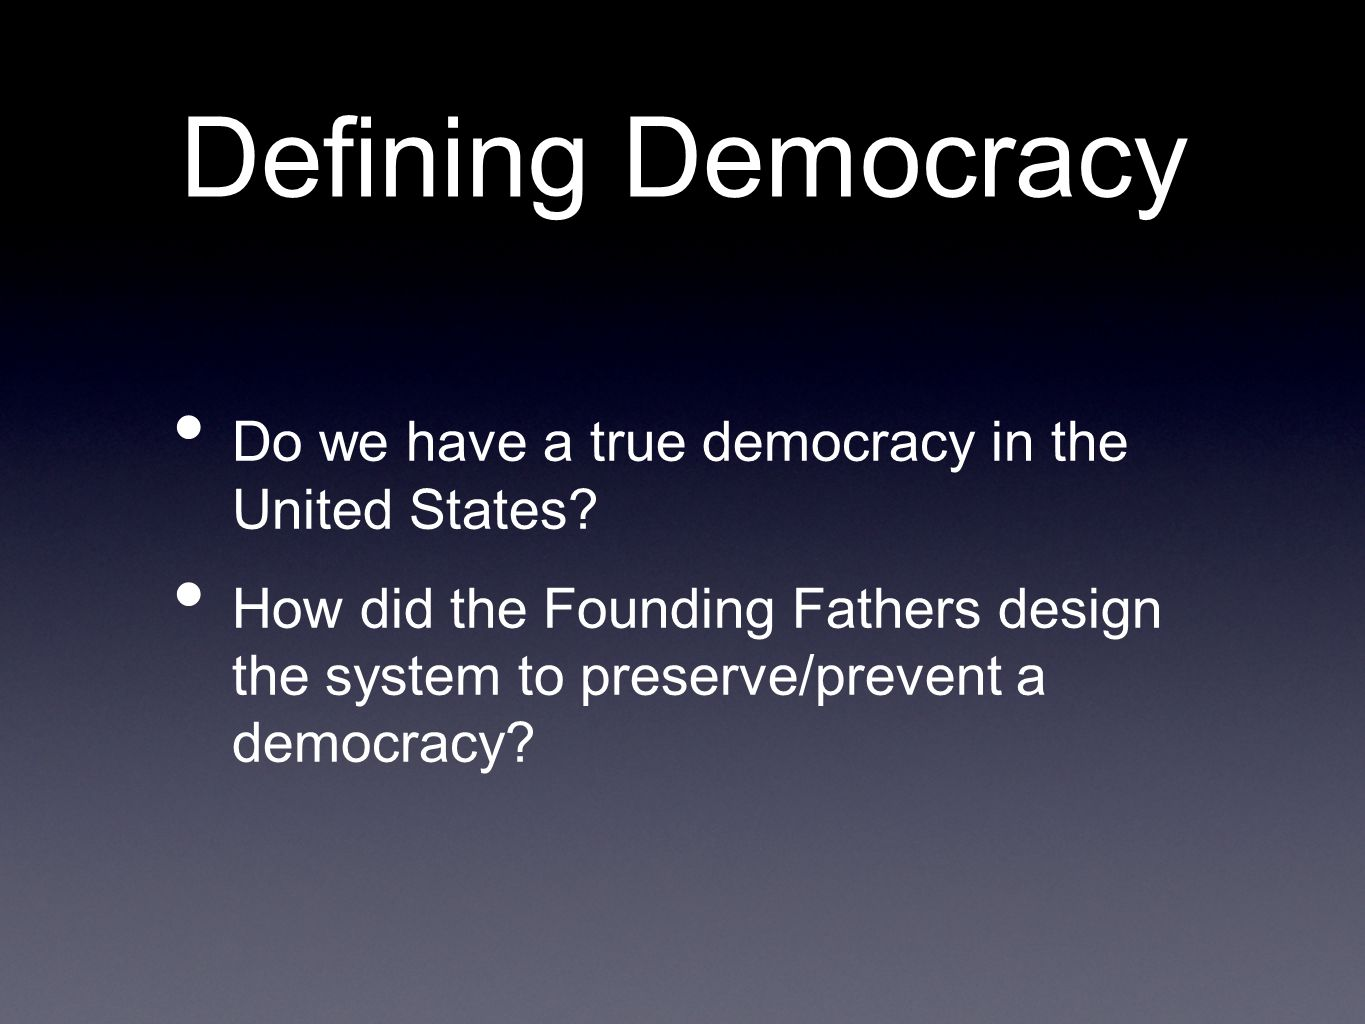 Democracy in America: What Does it Mean?